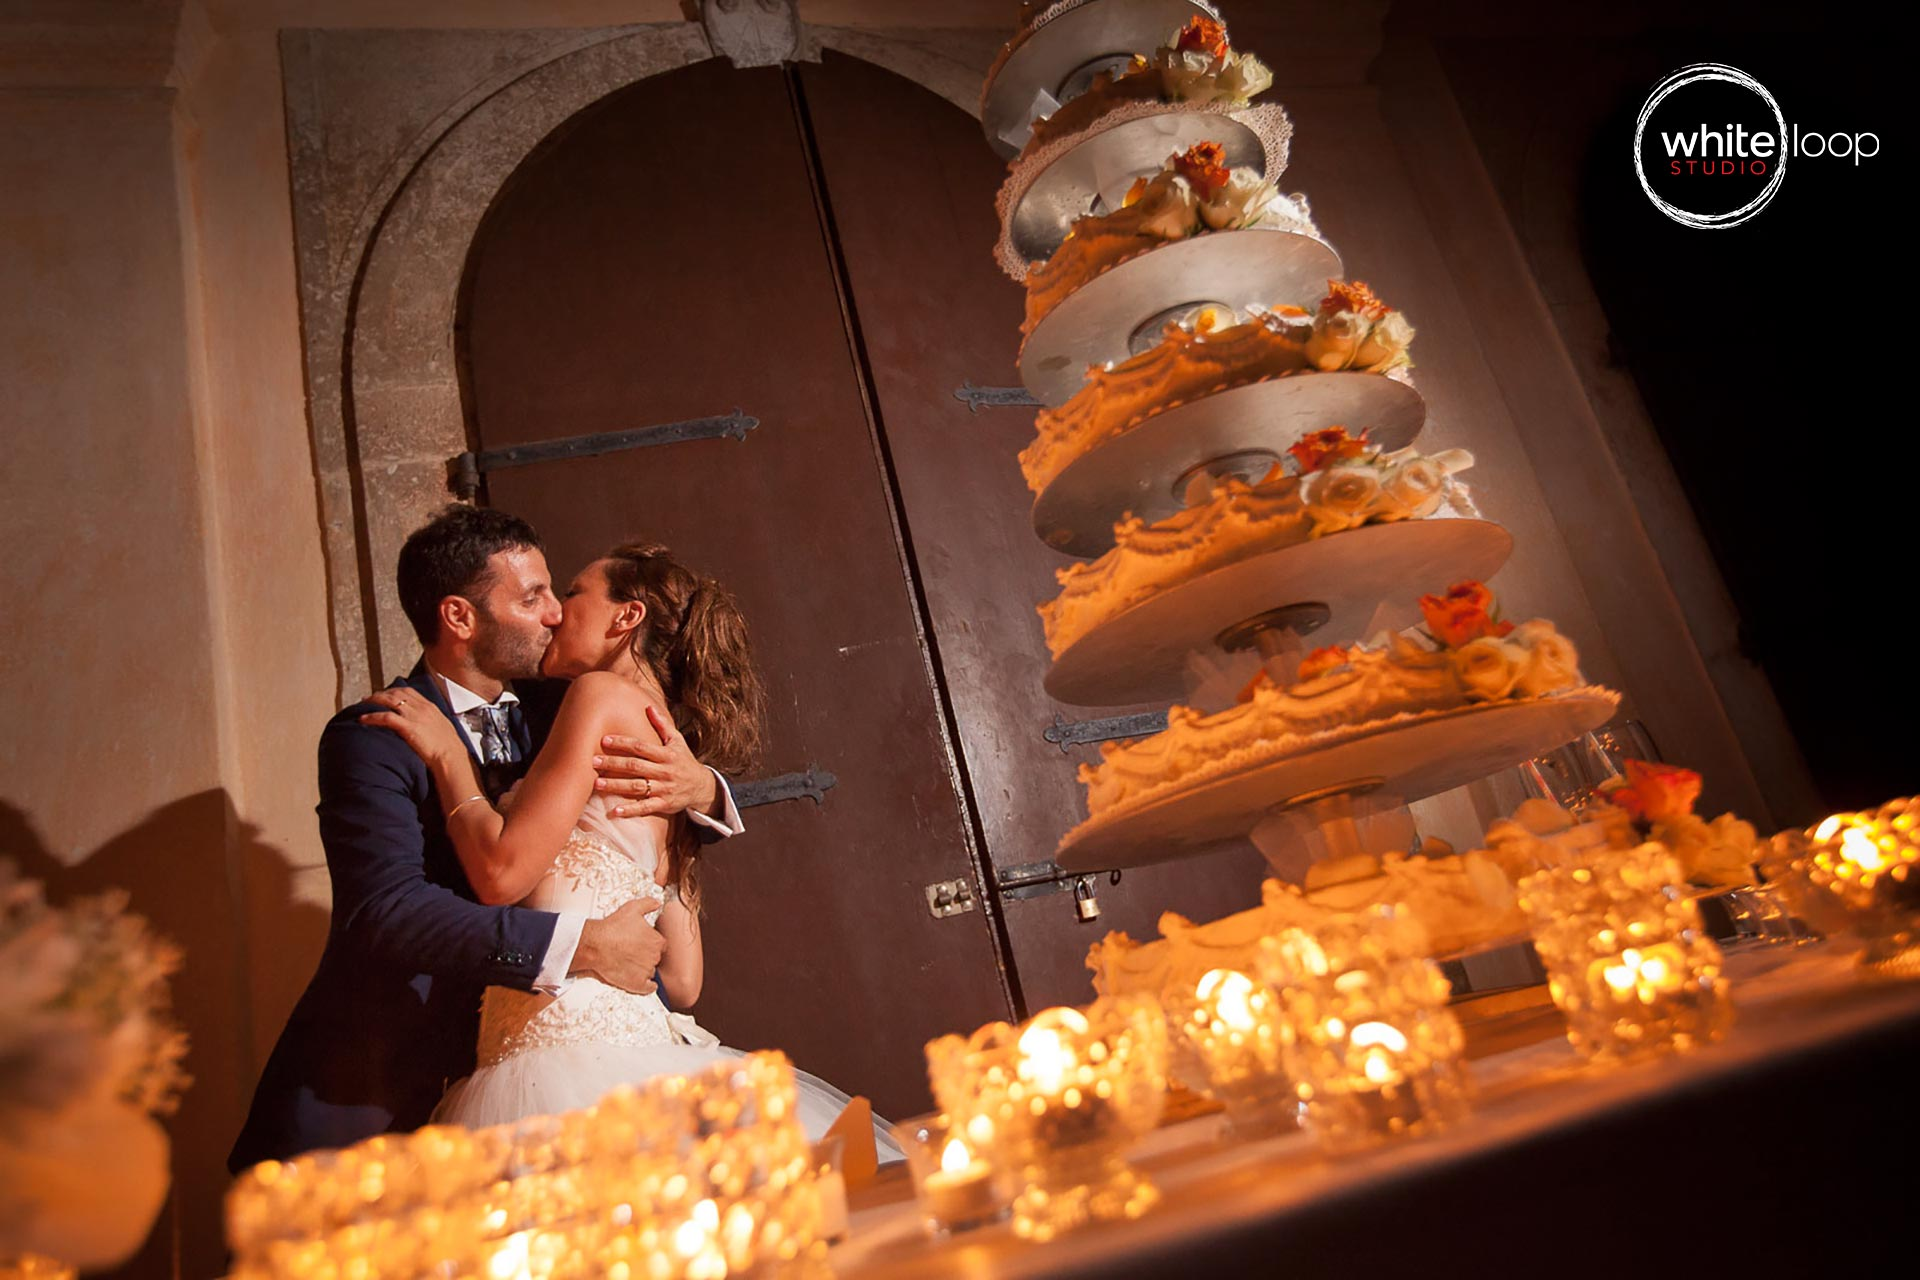 The bride and groom kiss on one side of cake with some lighting, defining a romantic and special moment.